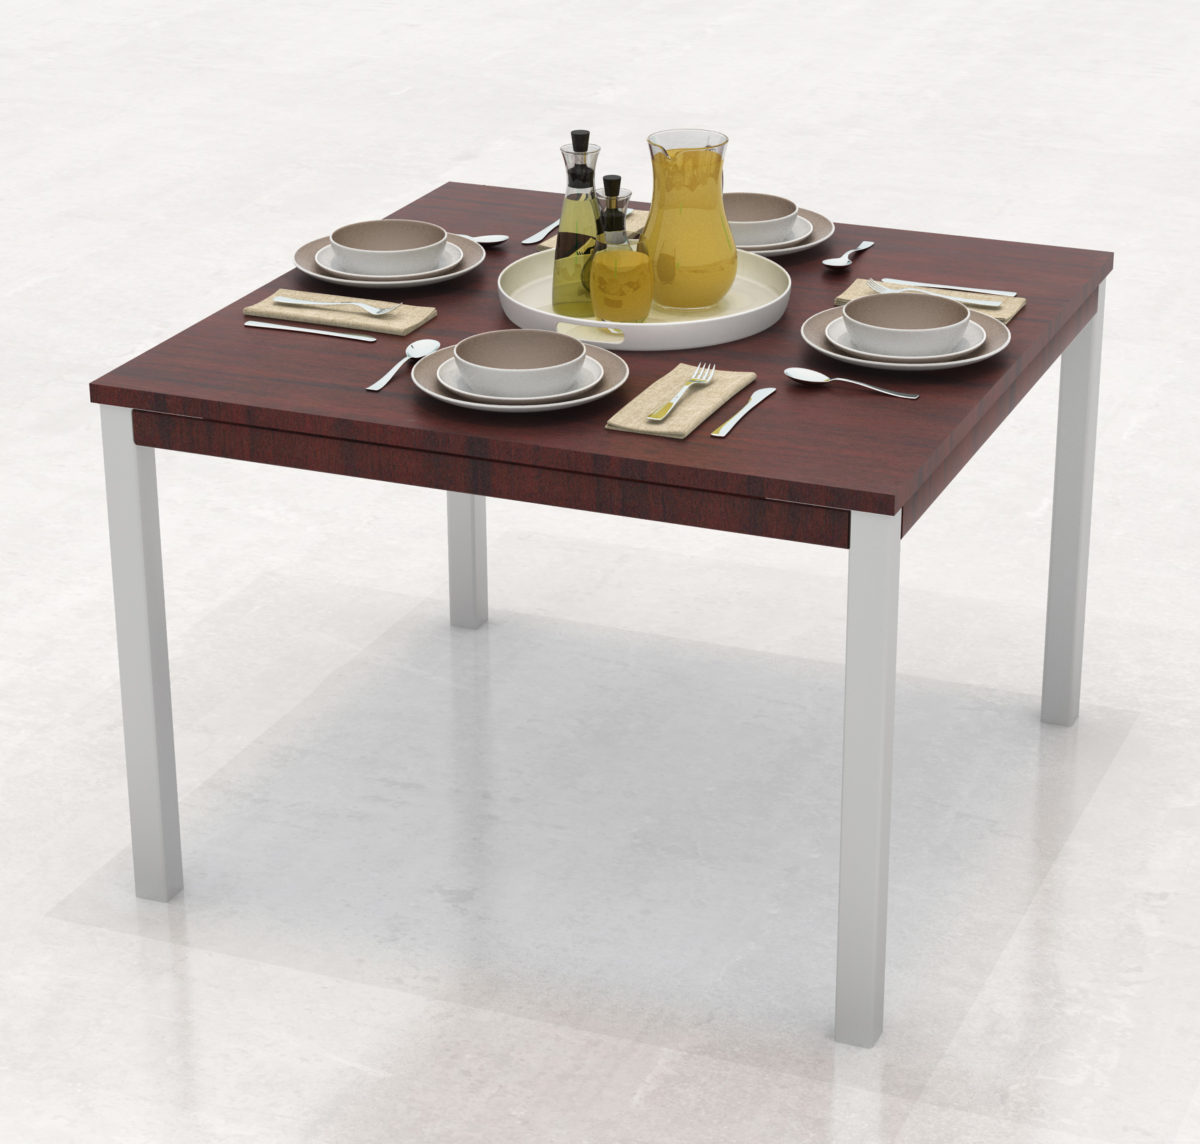 Laminate Top Steel Post Leg Dining Table With Skirt Intellicare Furniture